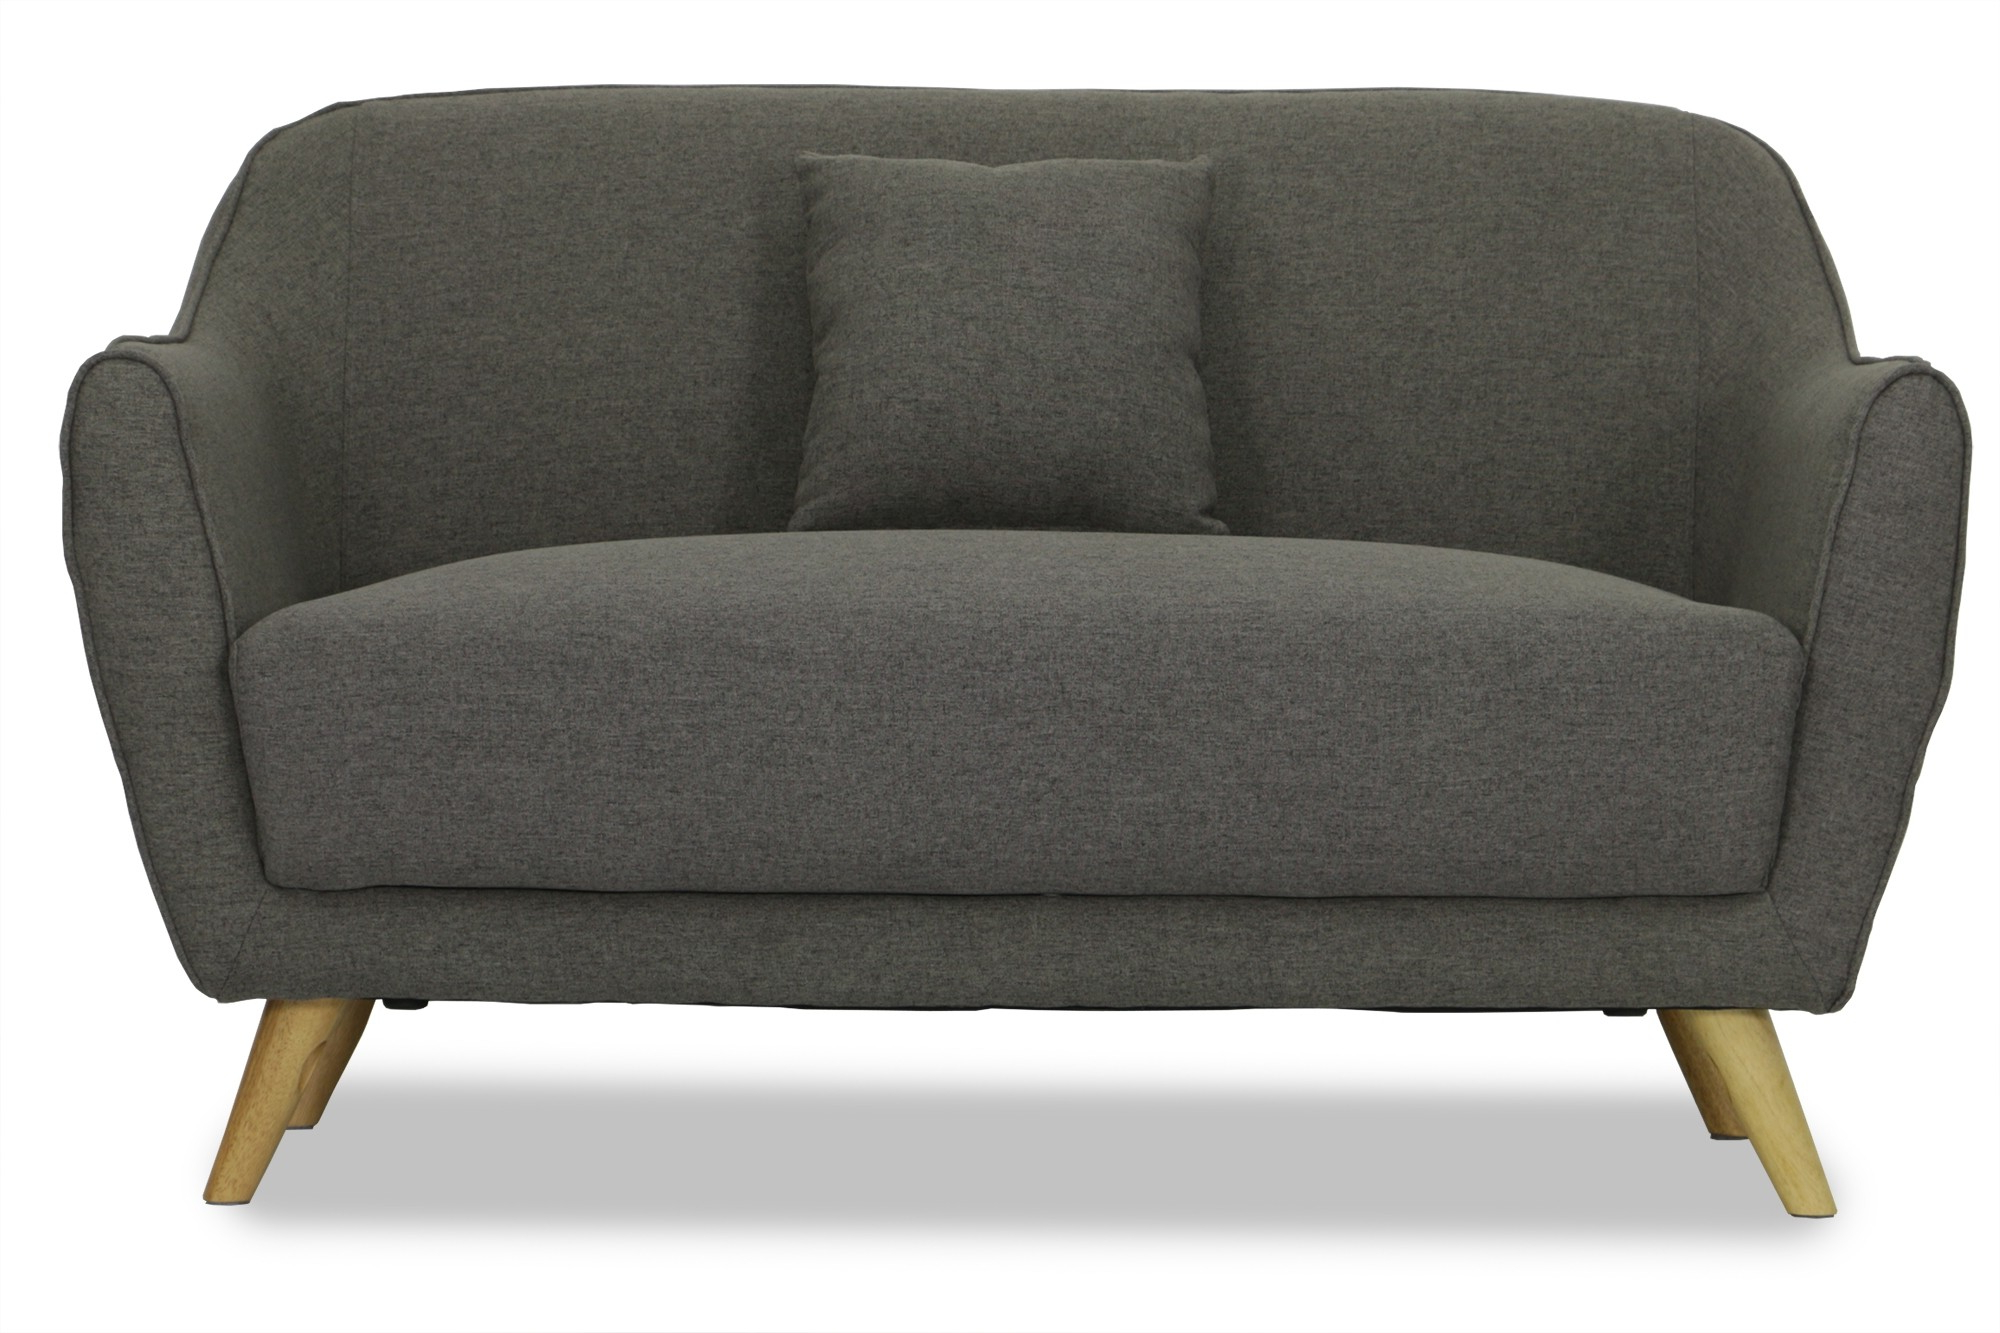 Kokoro Ii 2 Seater Sofa (View 12 of 20)